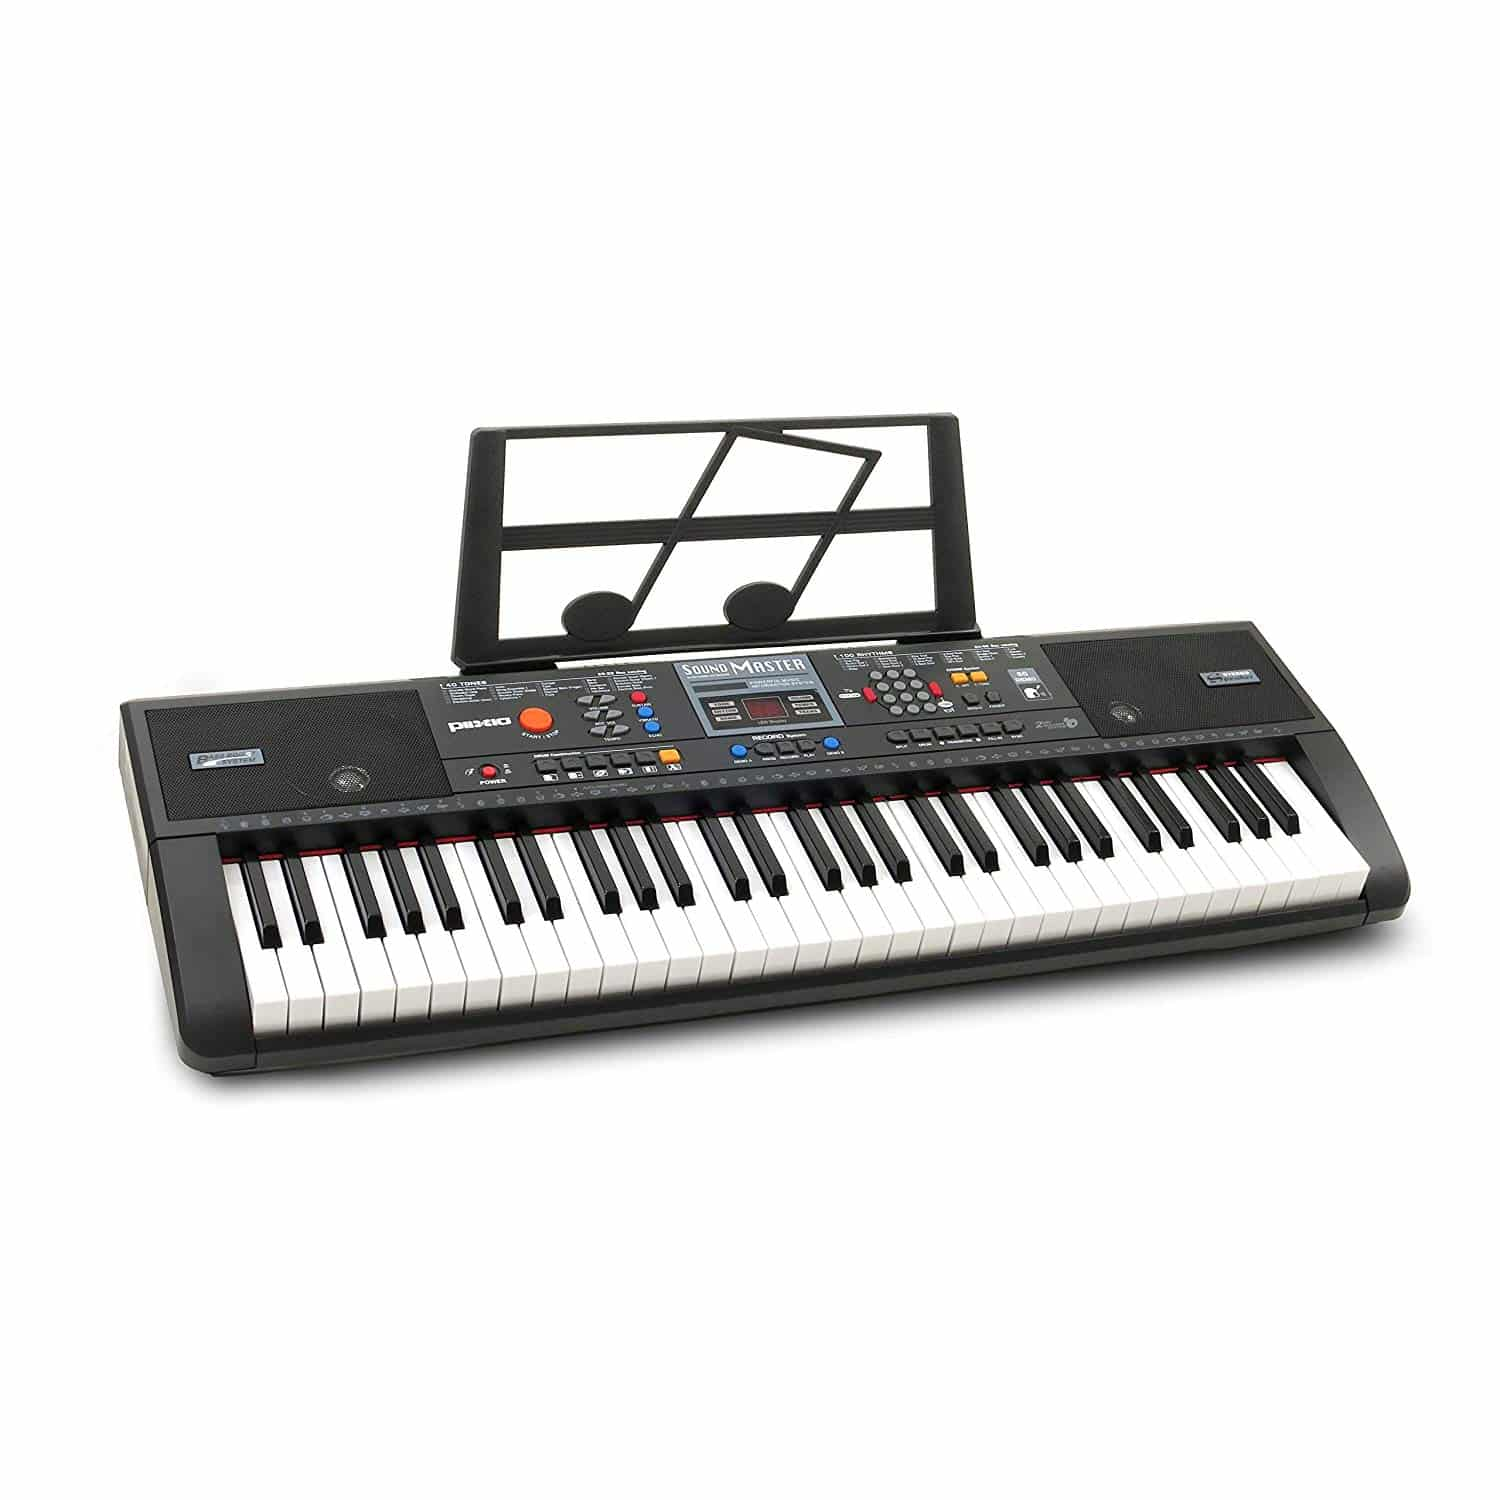 Plixio Digital Piano